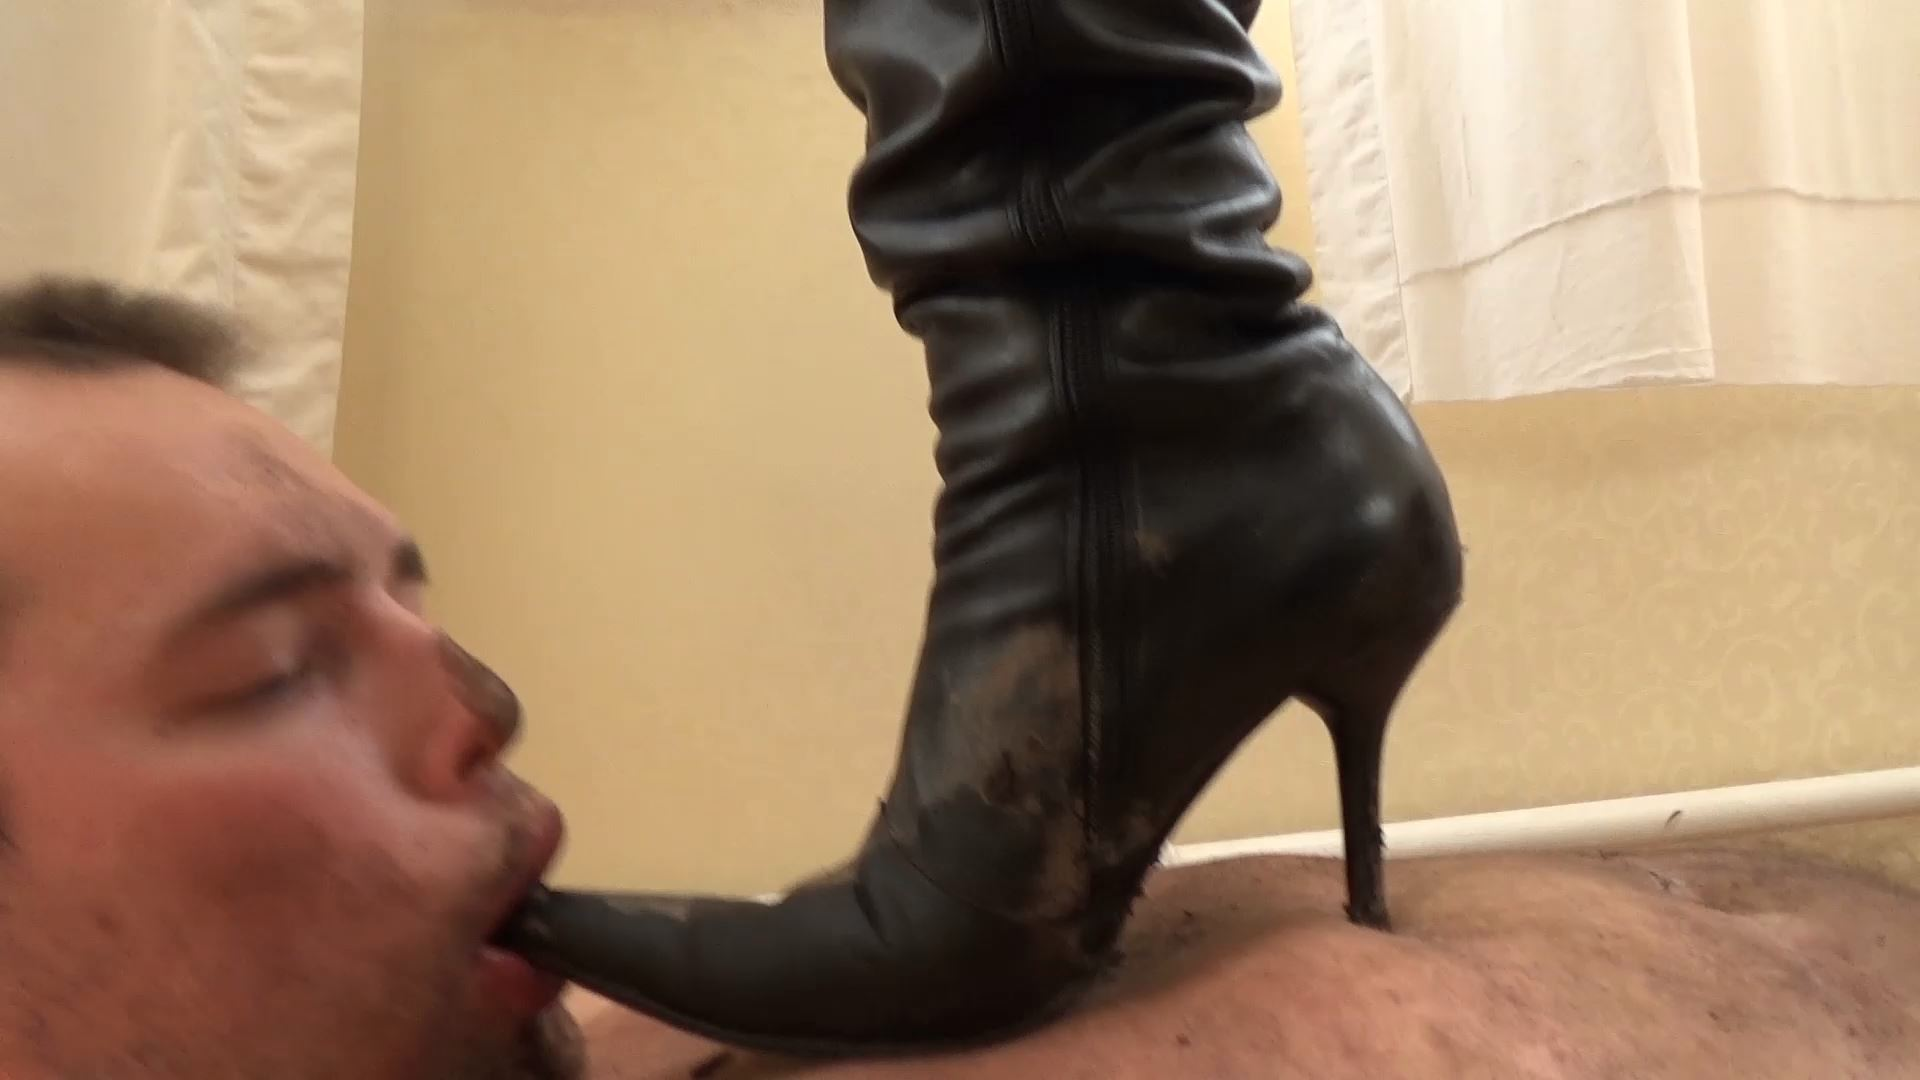 Trampled Under Two Pairs Of Dirty Boots - UNDER SWEET WEIGHT / CLIPS4SALE - FULL HD/1080p/MP4